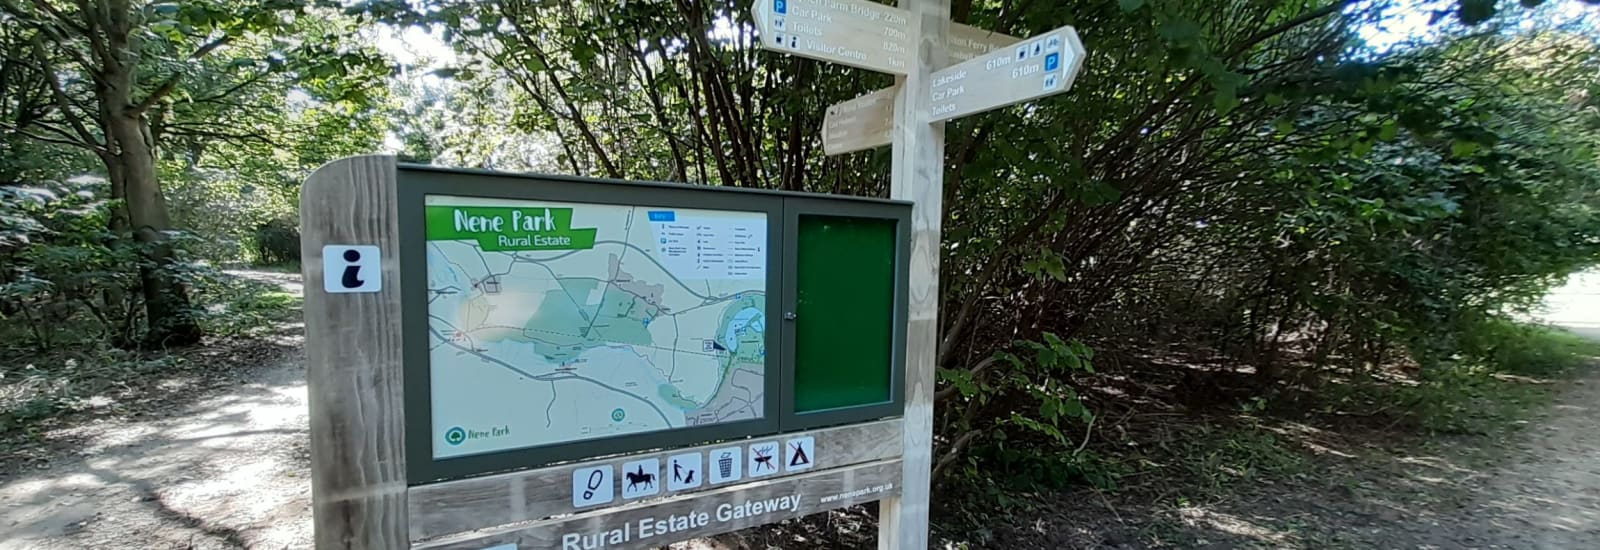 New signs and maps improve a visit to the Rural Estate